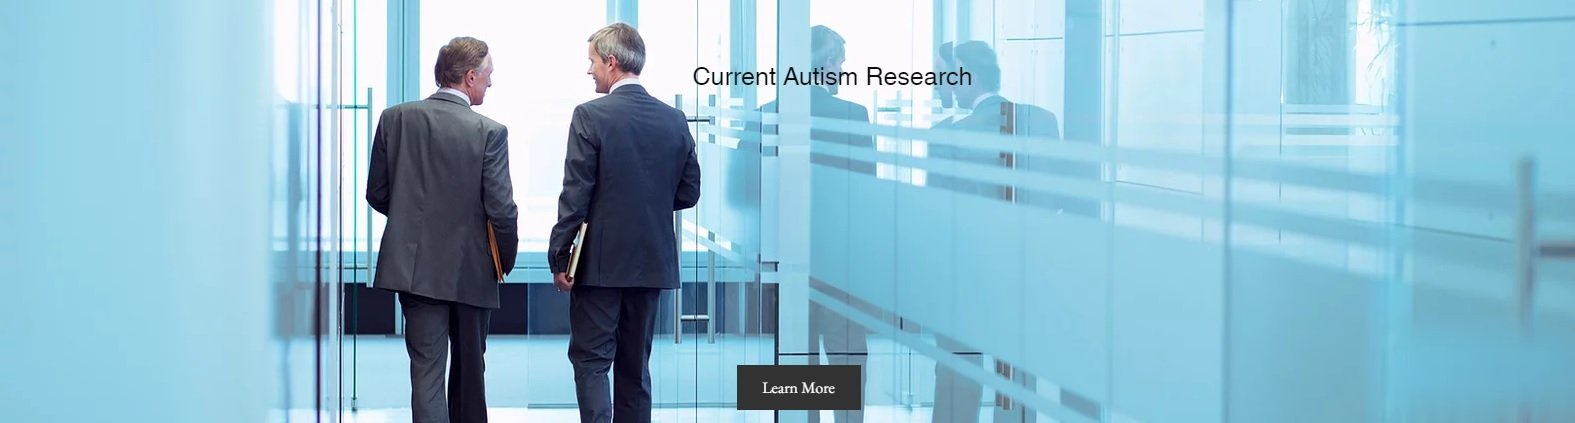 current autism research